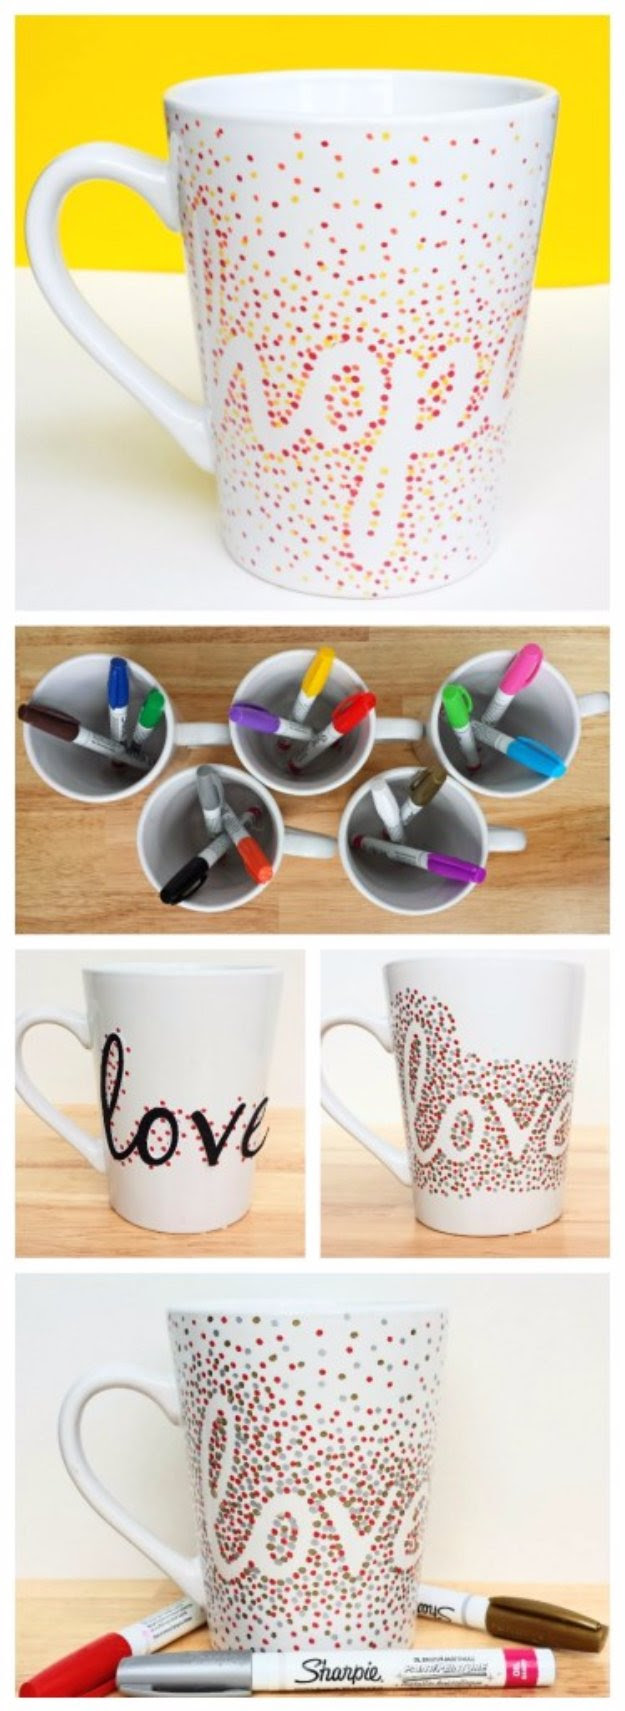 25 Unique Quick And Simple Crafts For Adults Handicraft Photos